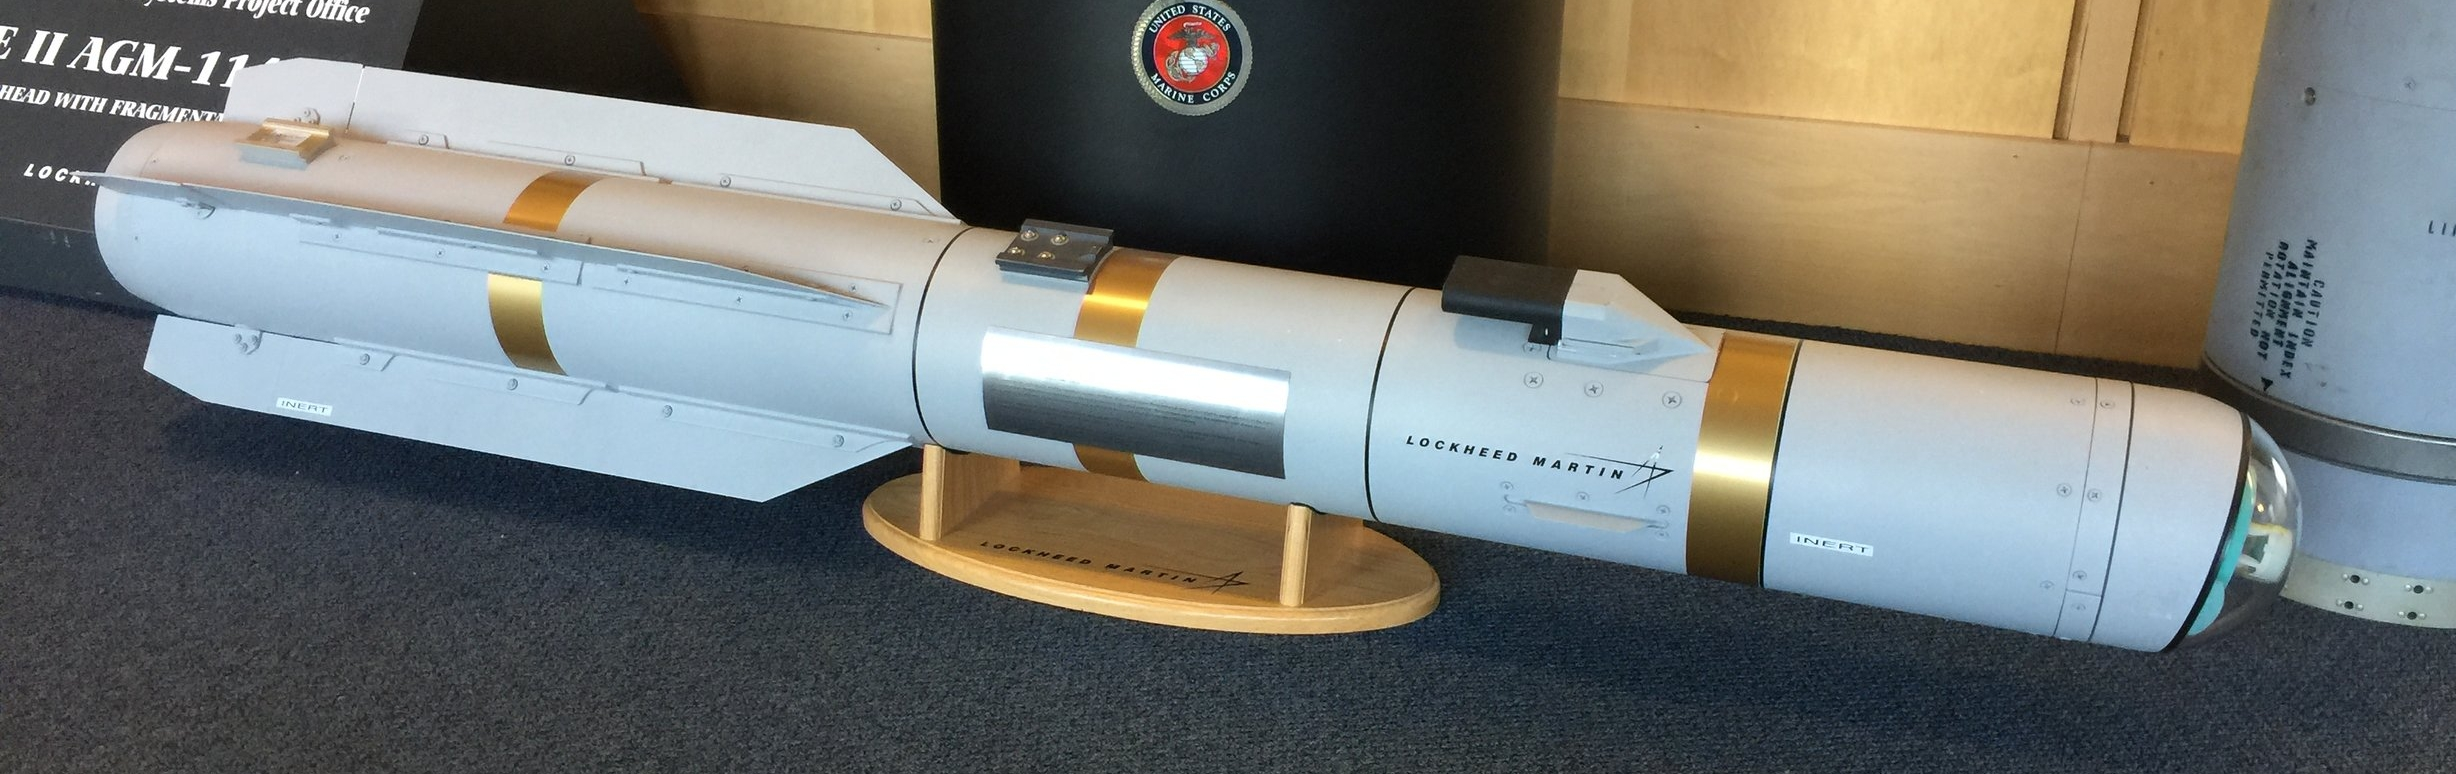 Lockheed Martin's @JAGM (Joint-Air-to-Ground Missile)